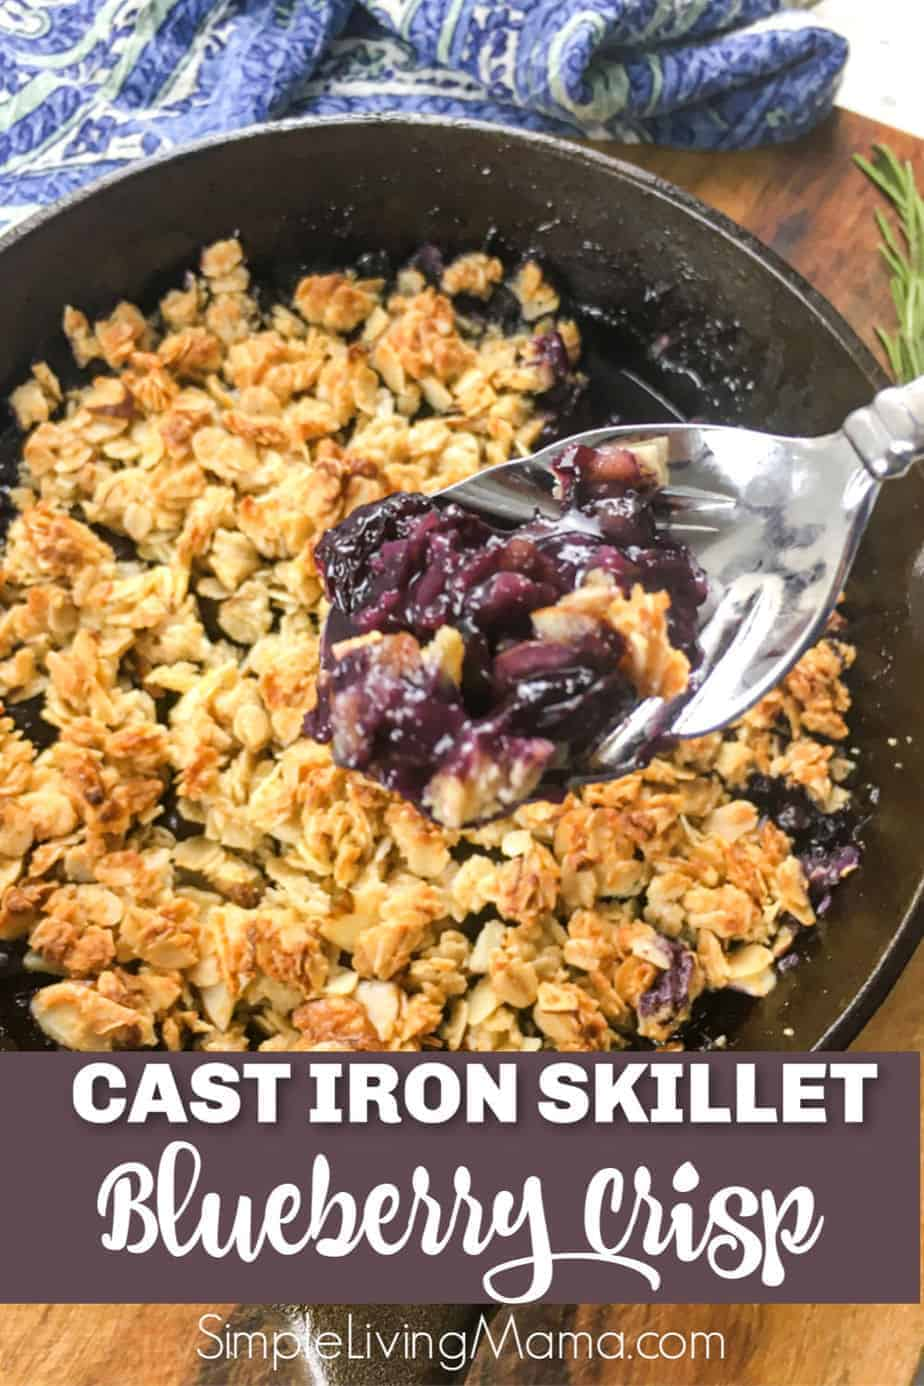 Delicious blueberry crisp made in a cast iron skillet.